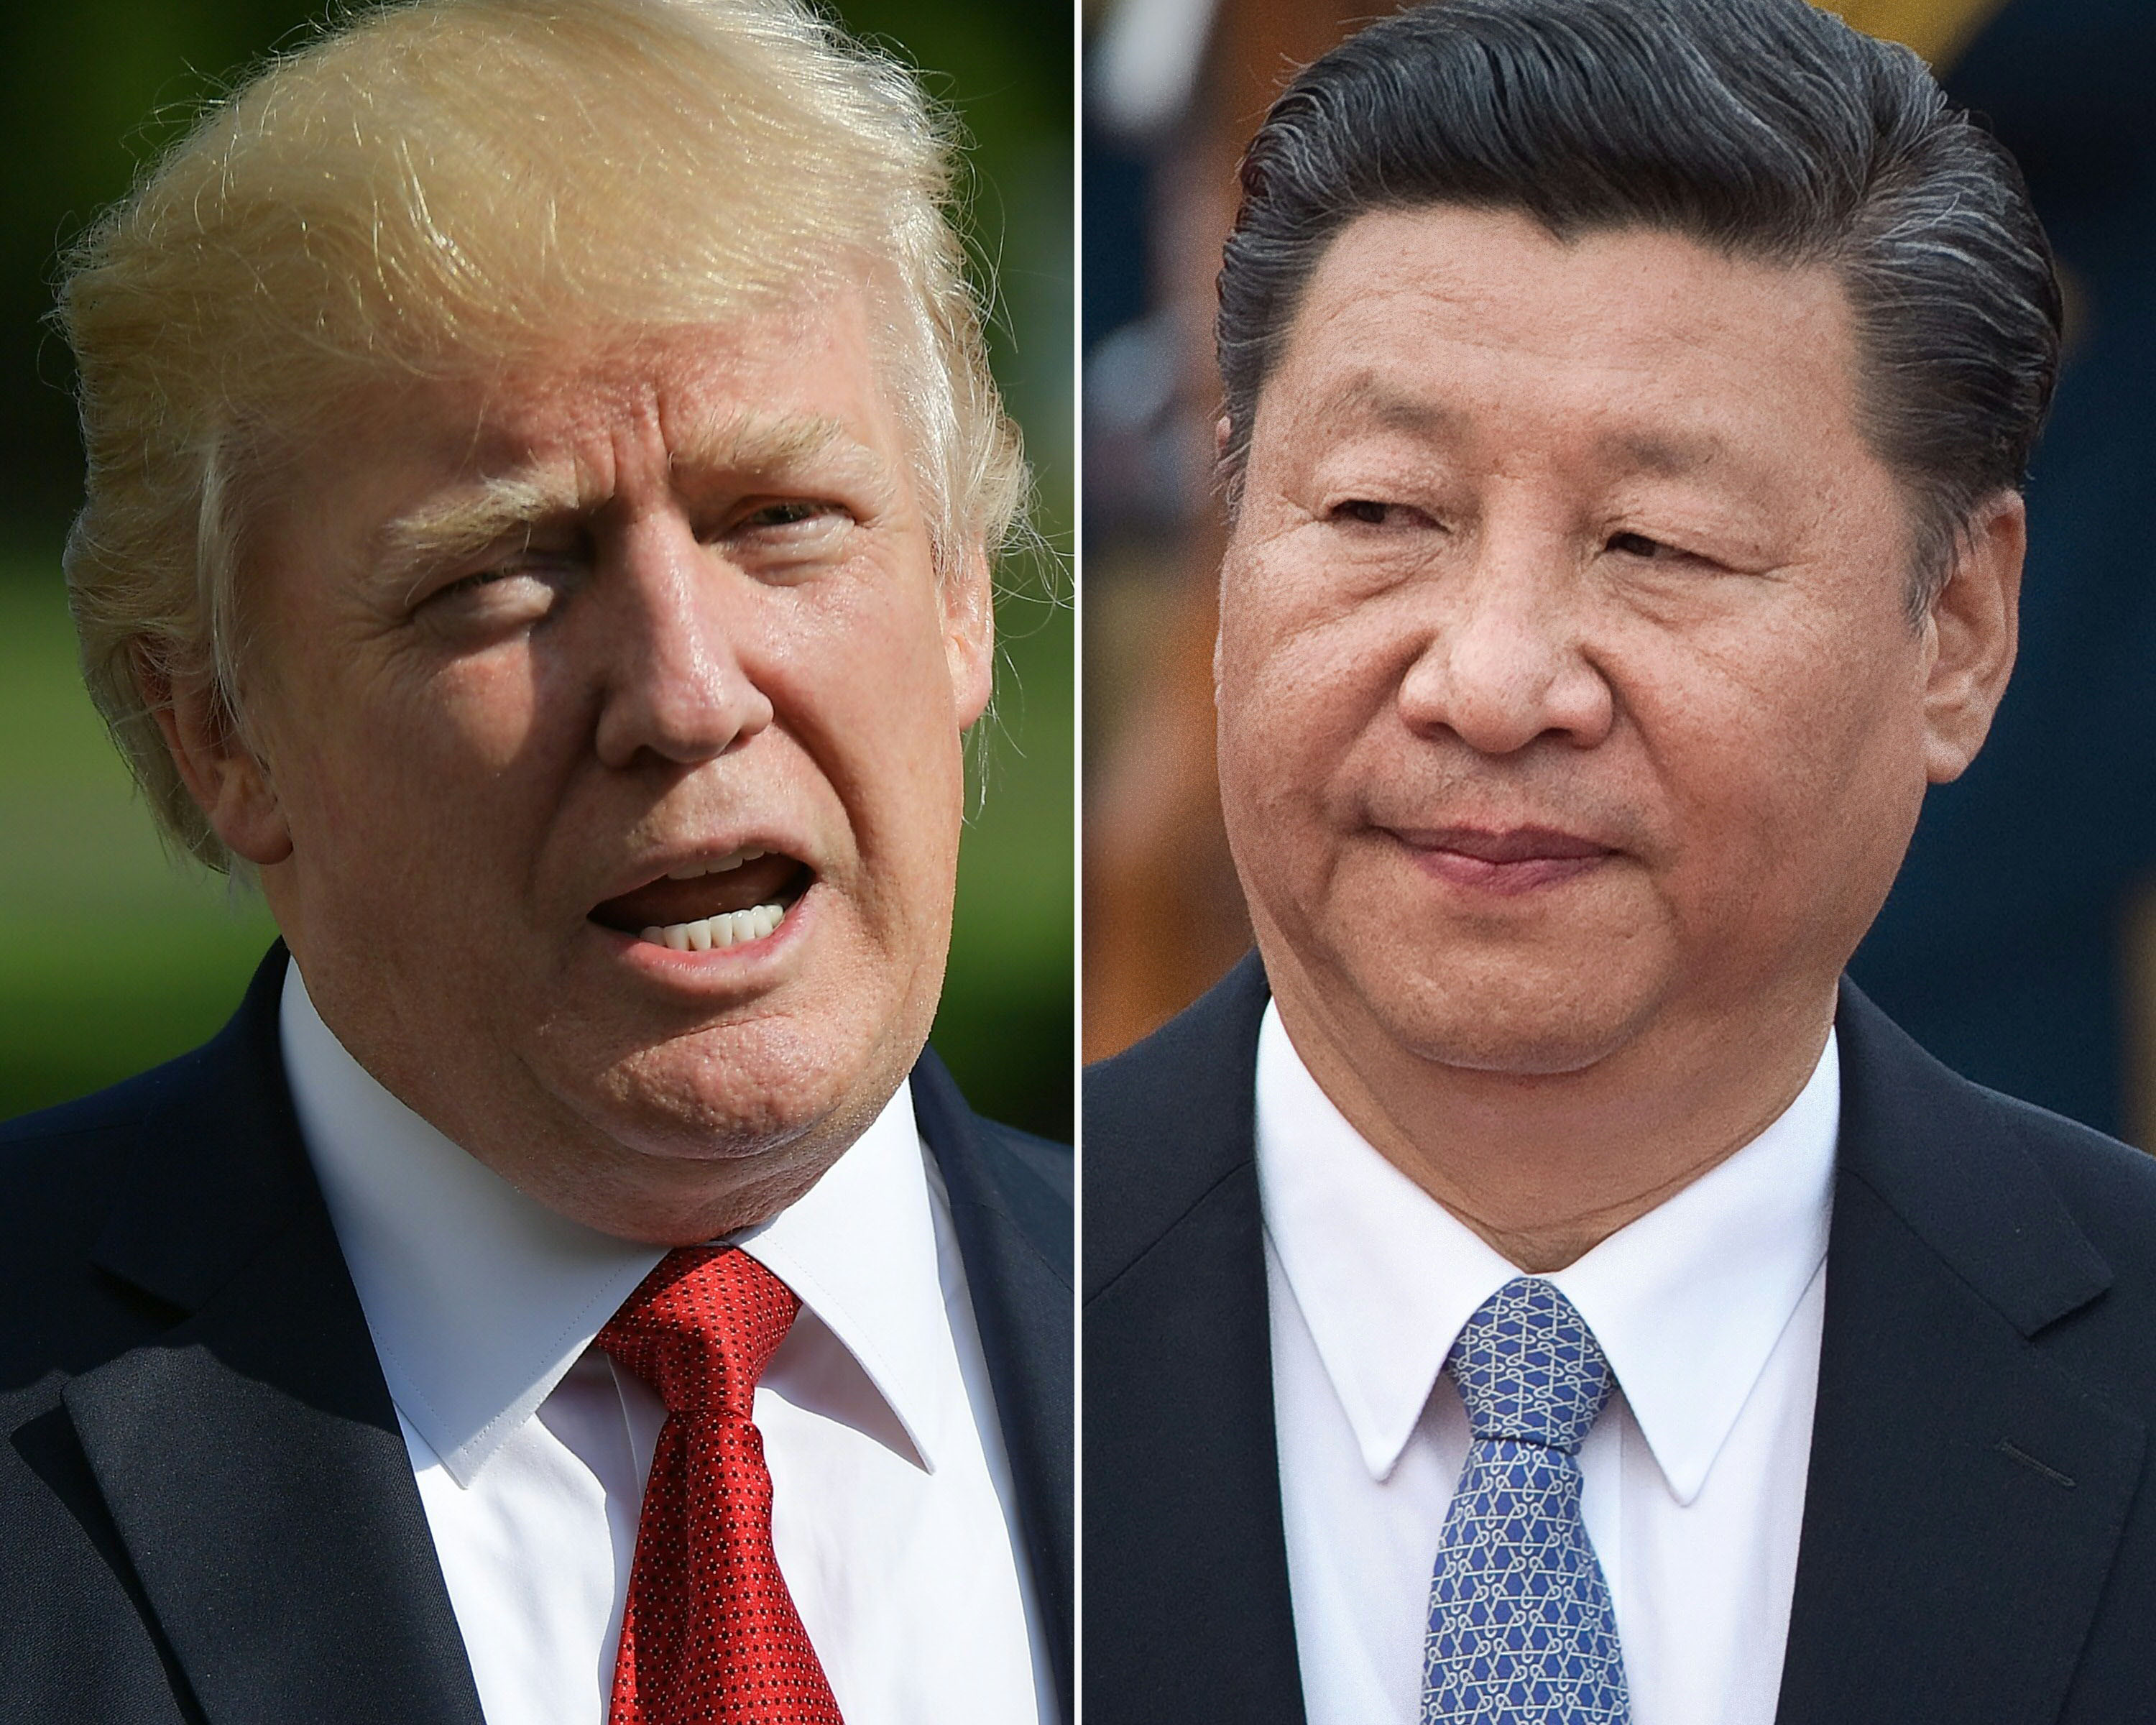 U.S. President Donald Trump in Washington, DC on Sept.10, 2017 and Chinese President Xi Jinping in Beijing on Sept. 13, 2017.